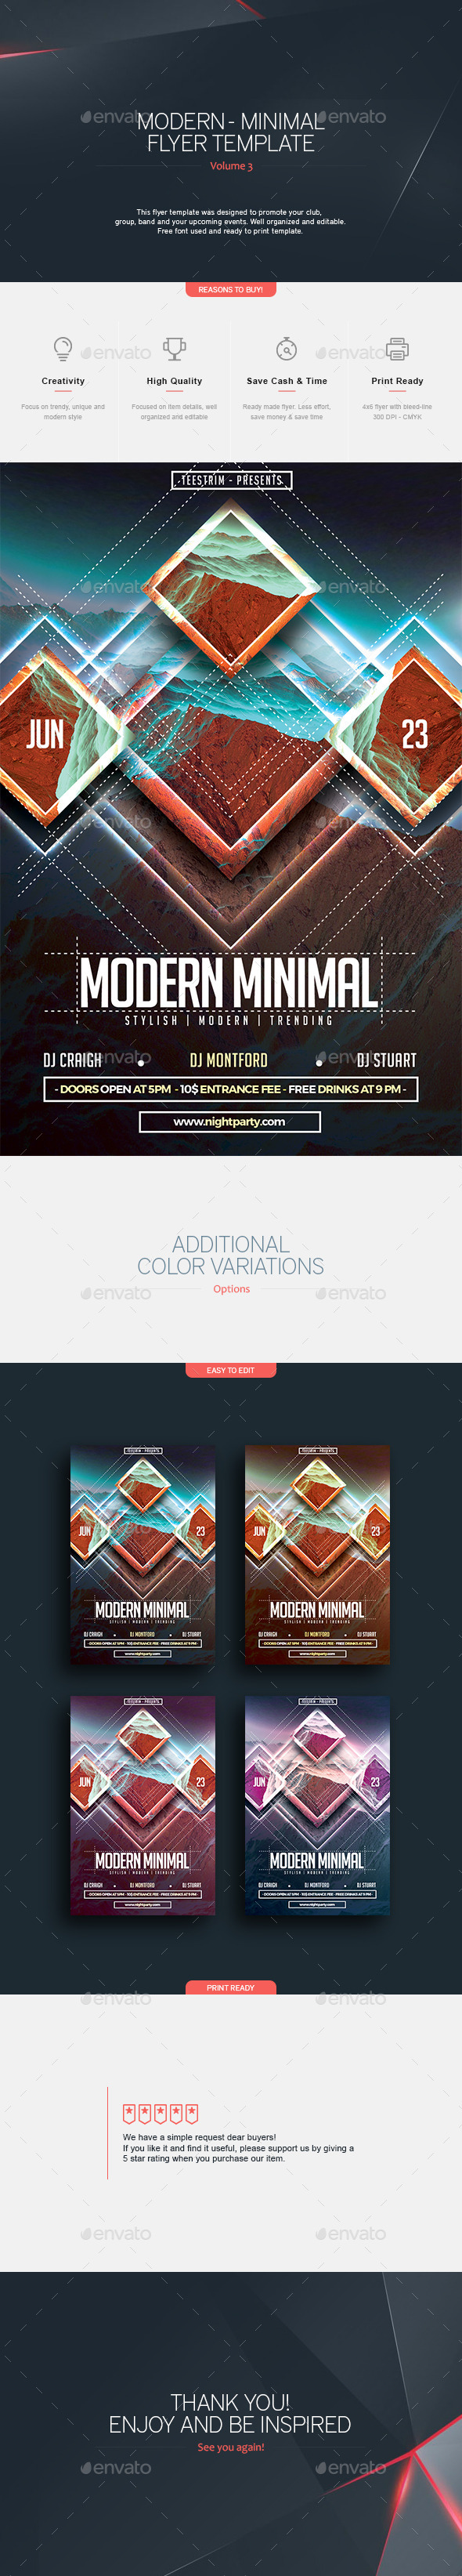 Modern Minimal - Flyer Template - Clubs & Parties Events